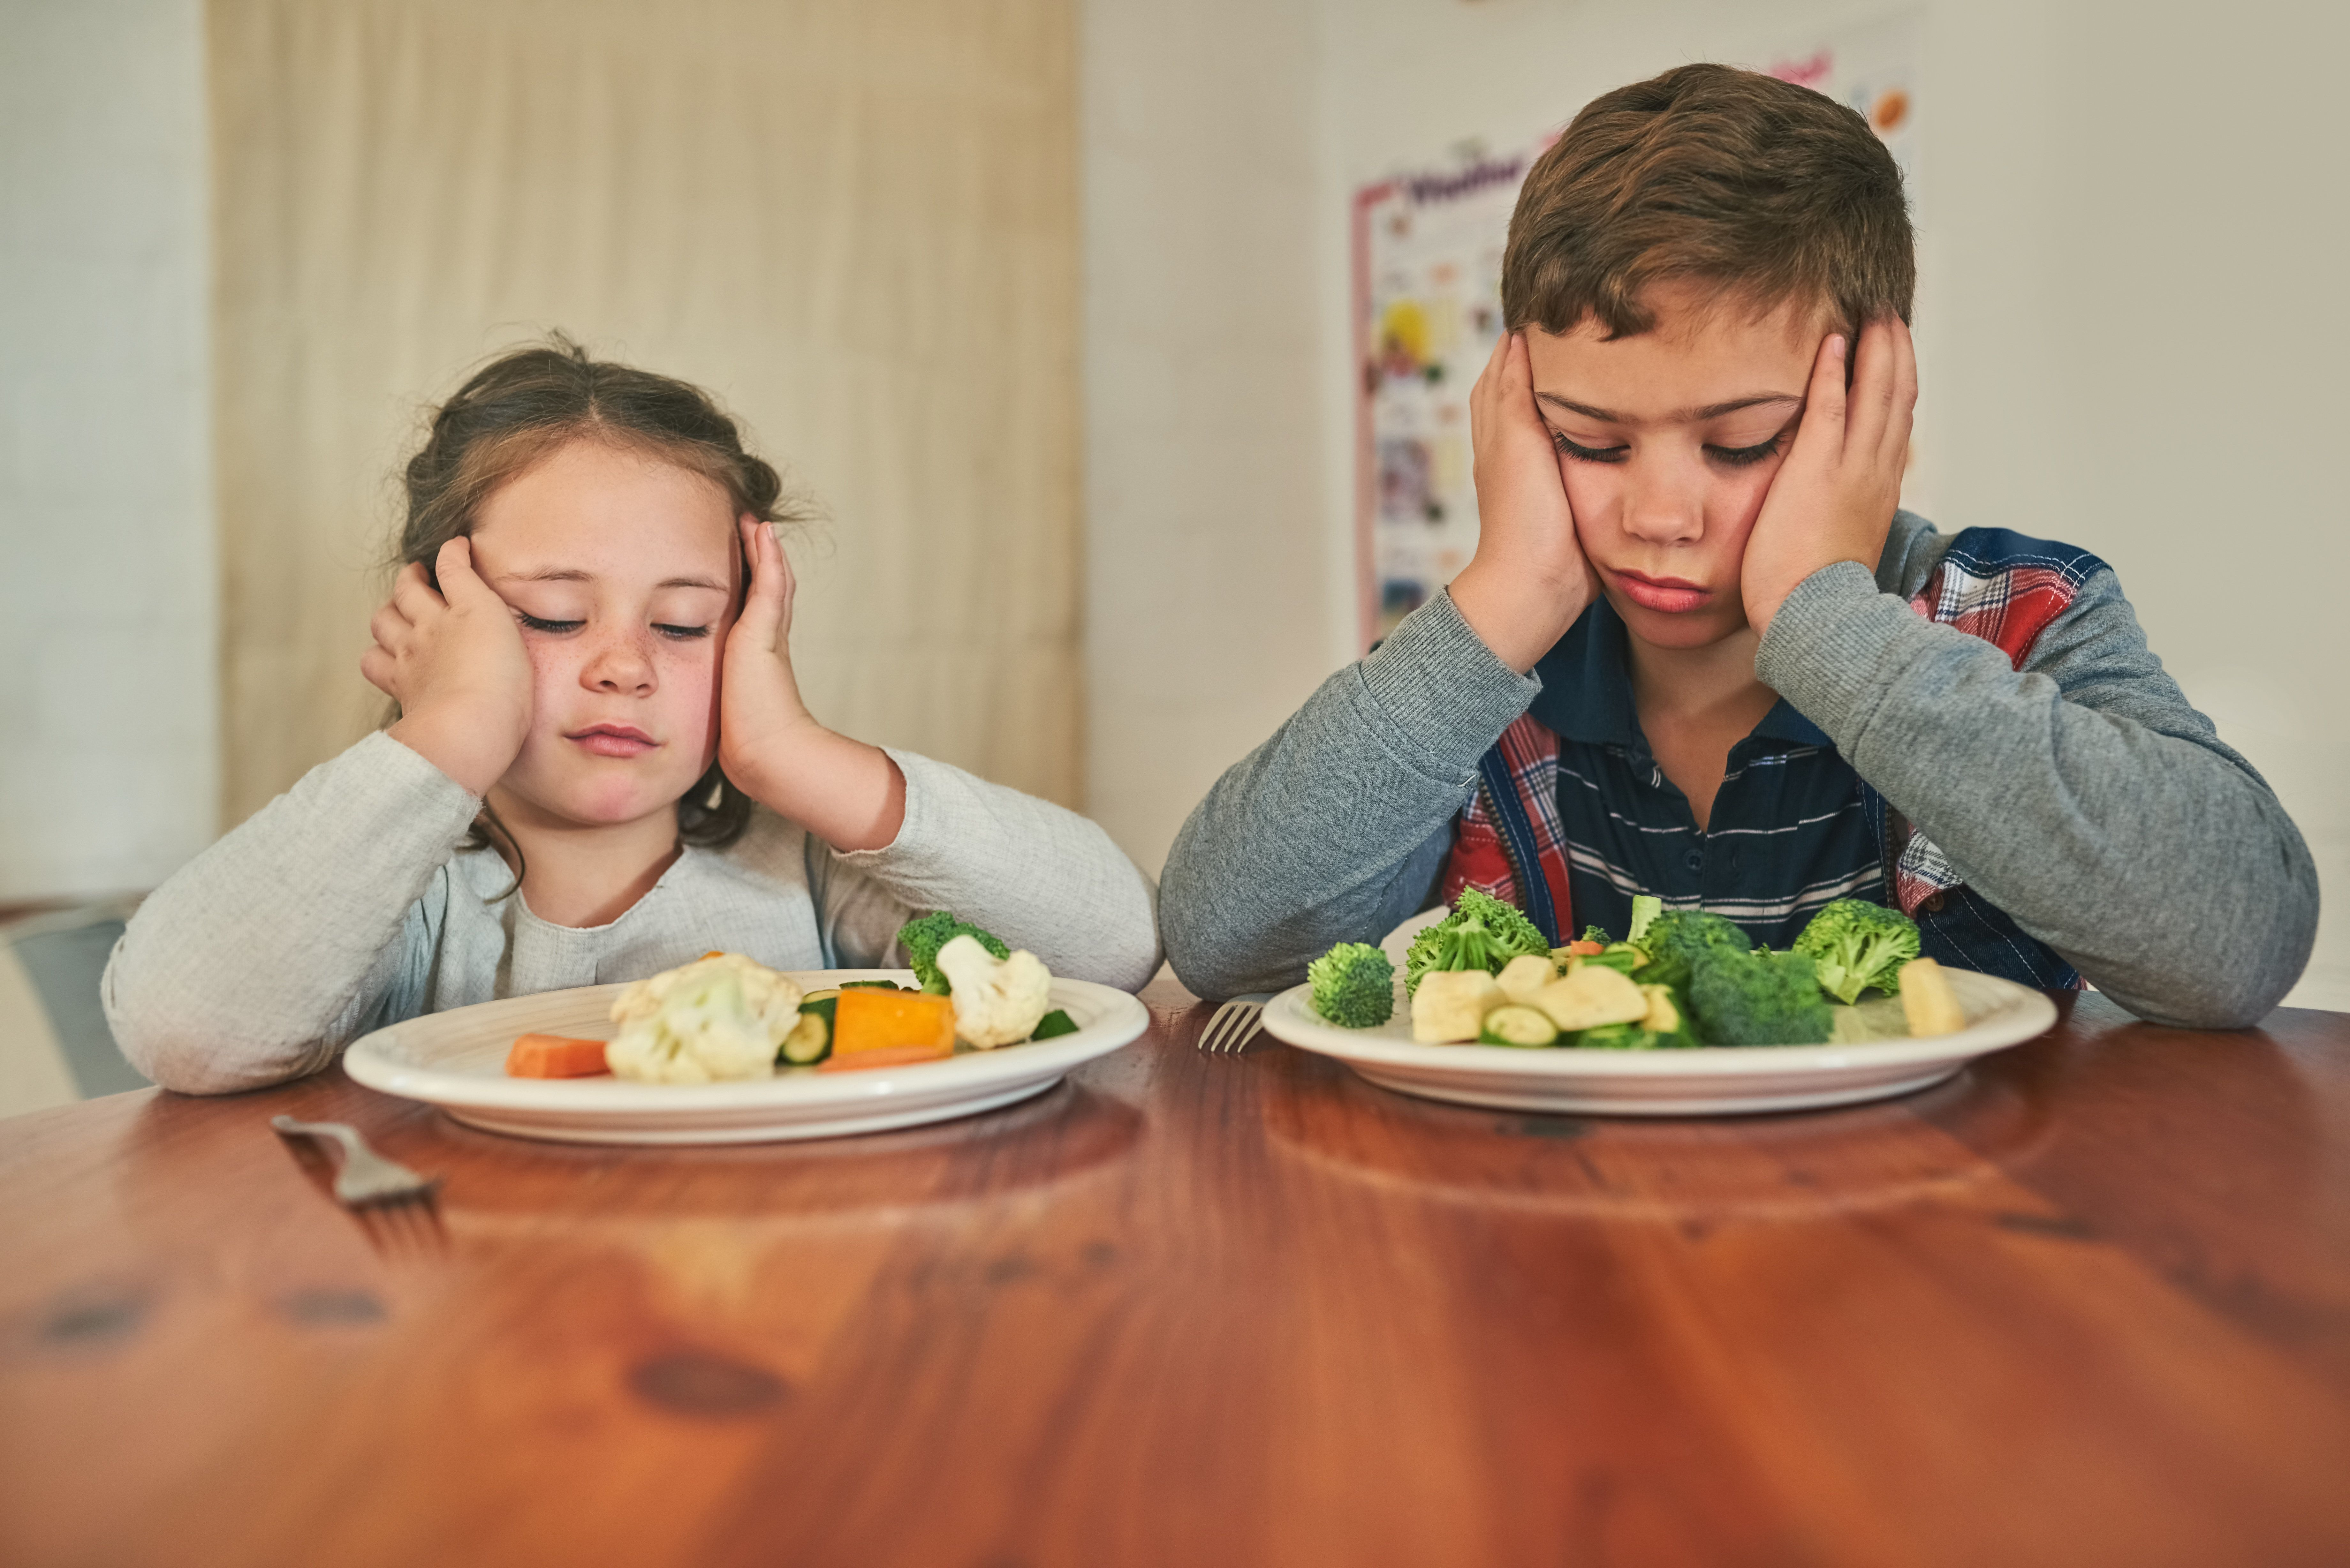 Is Your Child A Fussy Eater? This Research Shows How Kids Want Their Food